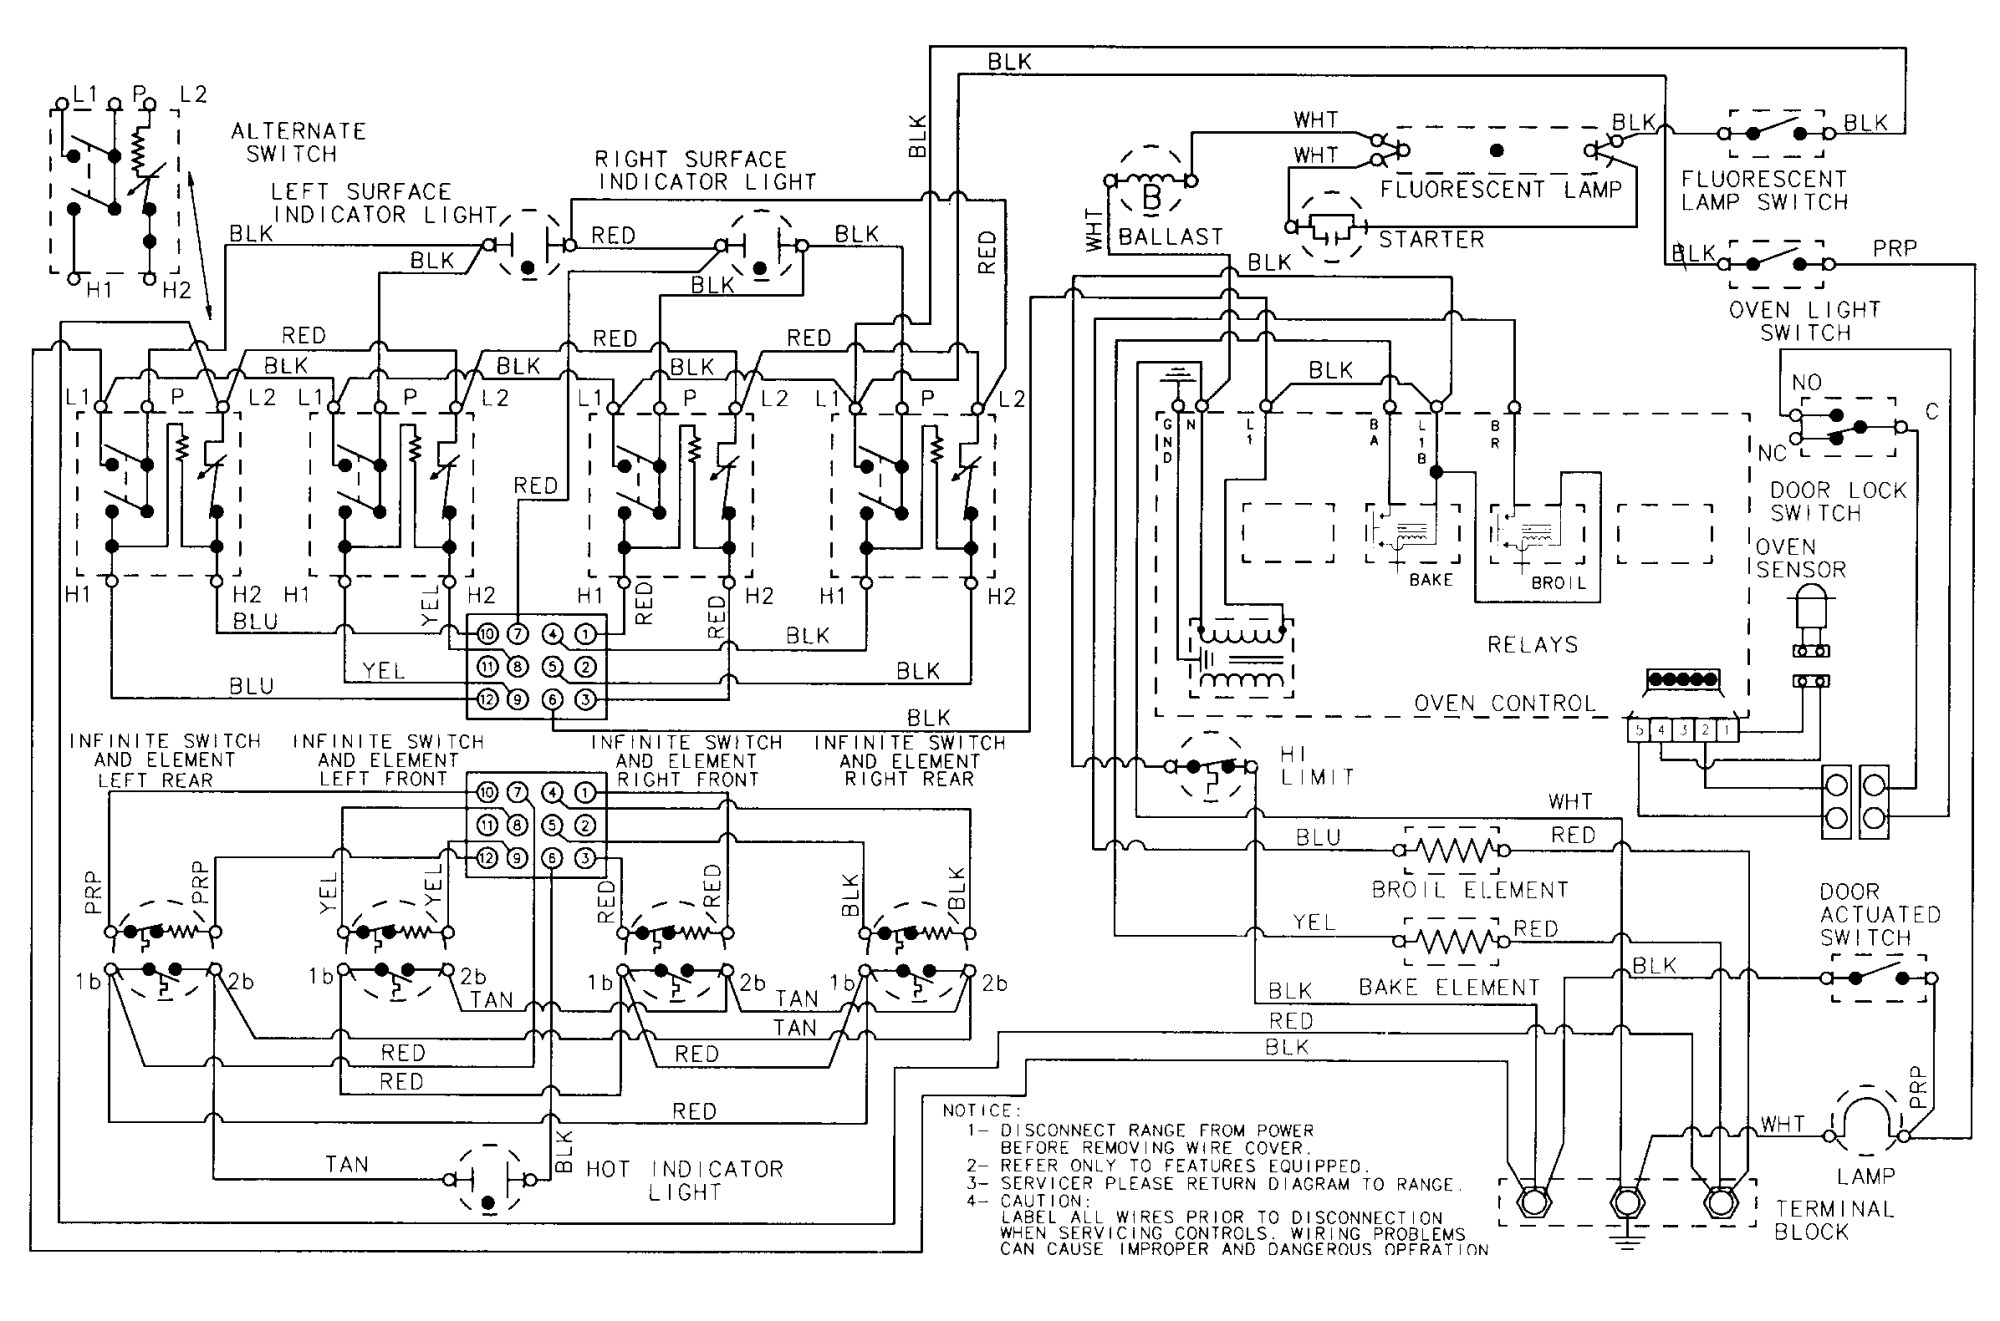 hight resolution of whirlpool gas range wiring diagram trusted wiring diagrams u2022 maytag washer wiring diagrams whirlpool cooktop